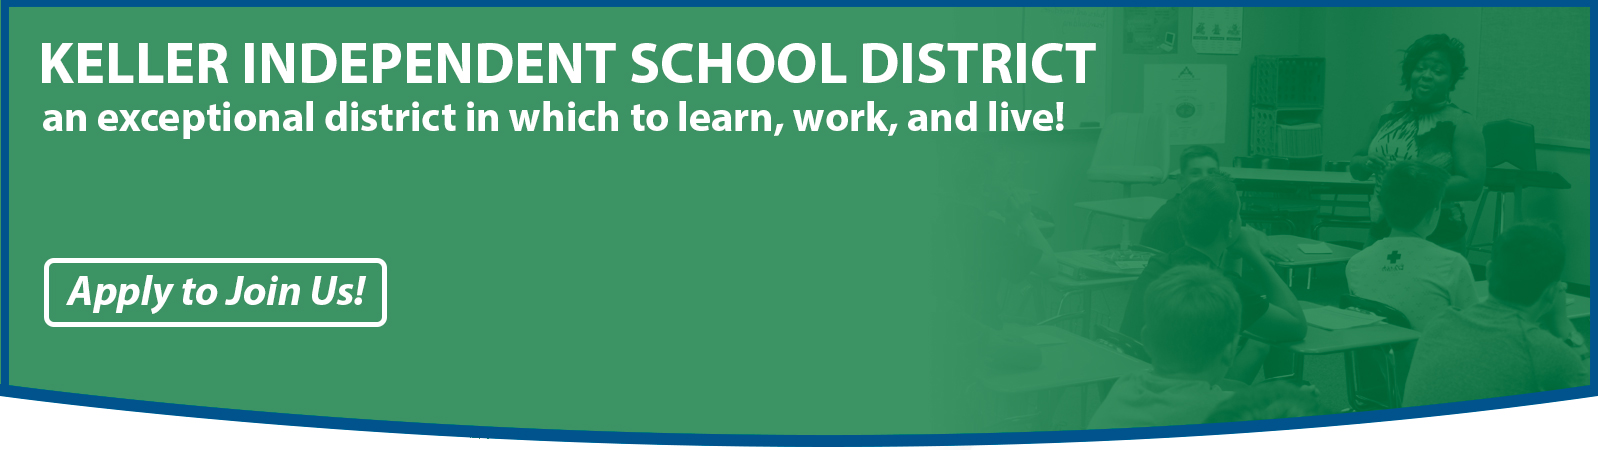 "Header: ""Keller Independent School District. An exceptional district in which to learn, work, and live! Apply to Join us!"